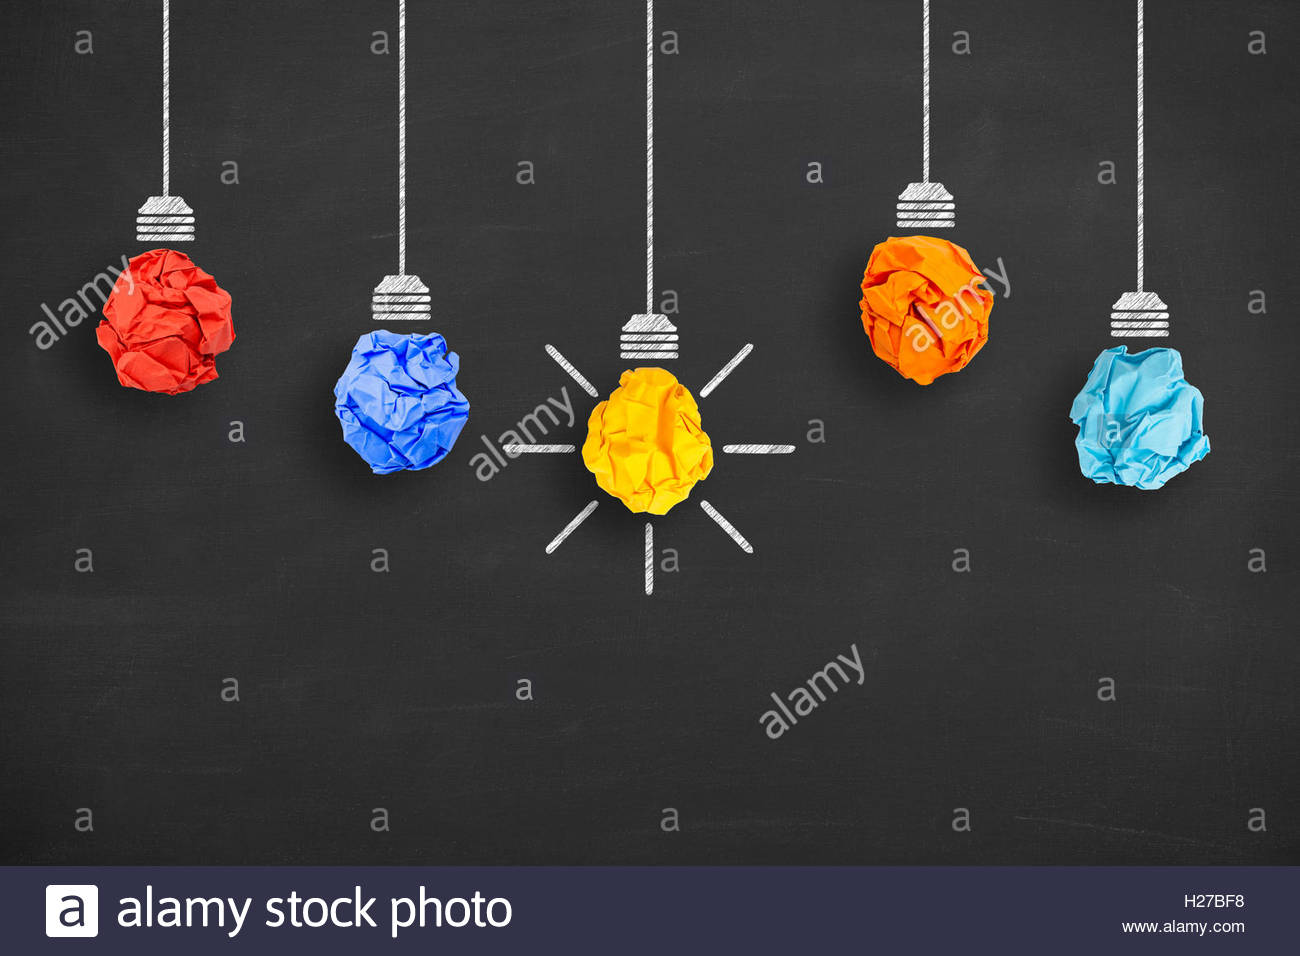 Idea Concept Crumpled Paper Light Bulb on Blackboard Background - Stock Image